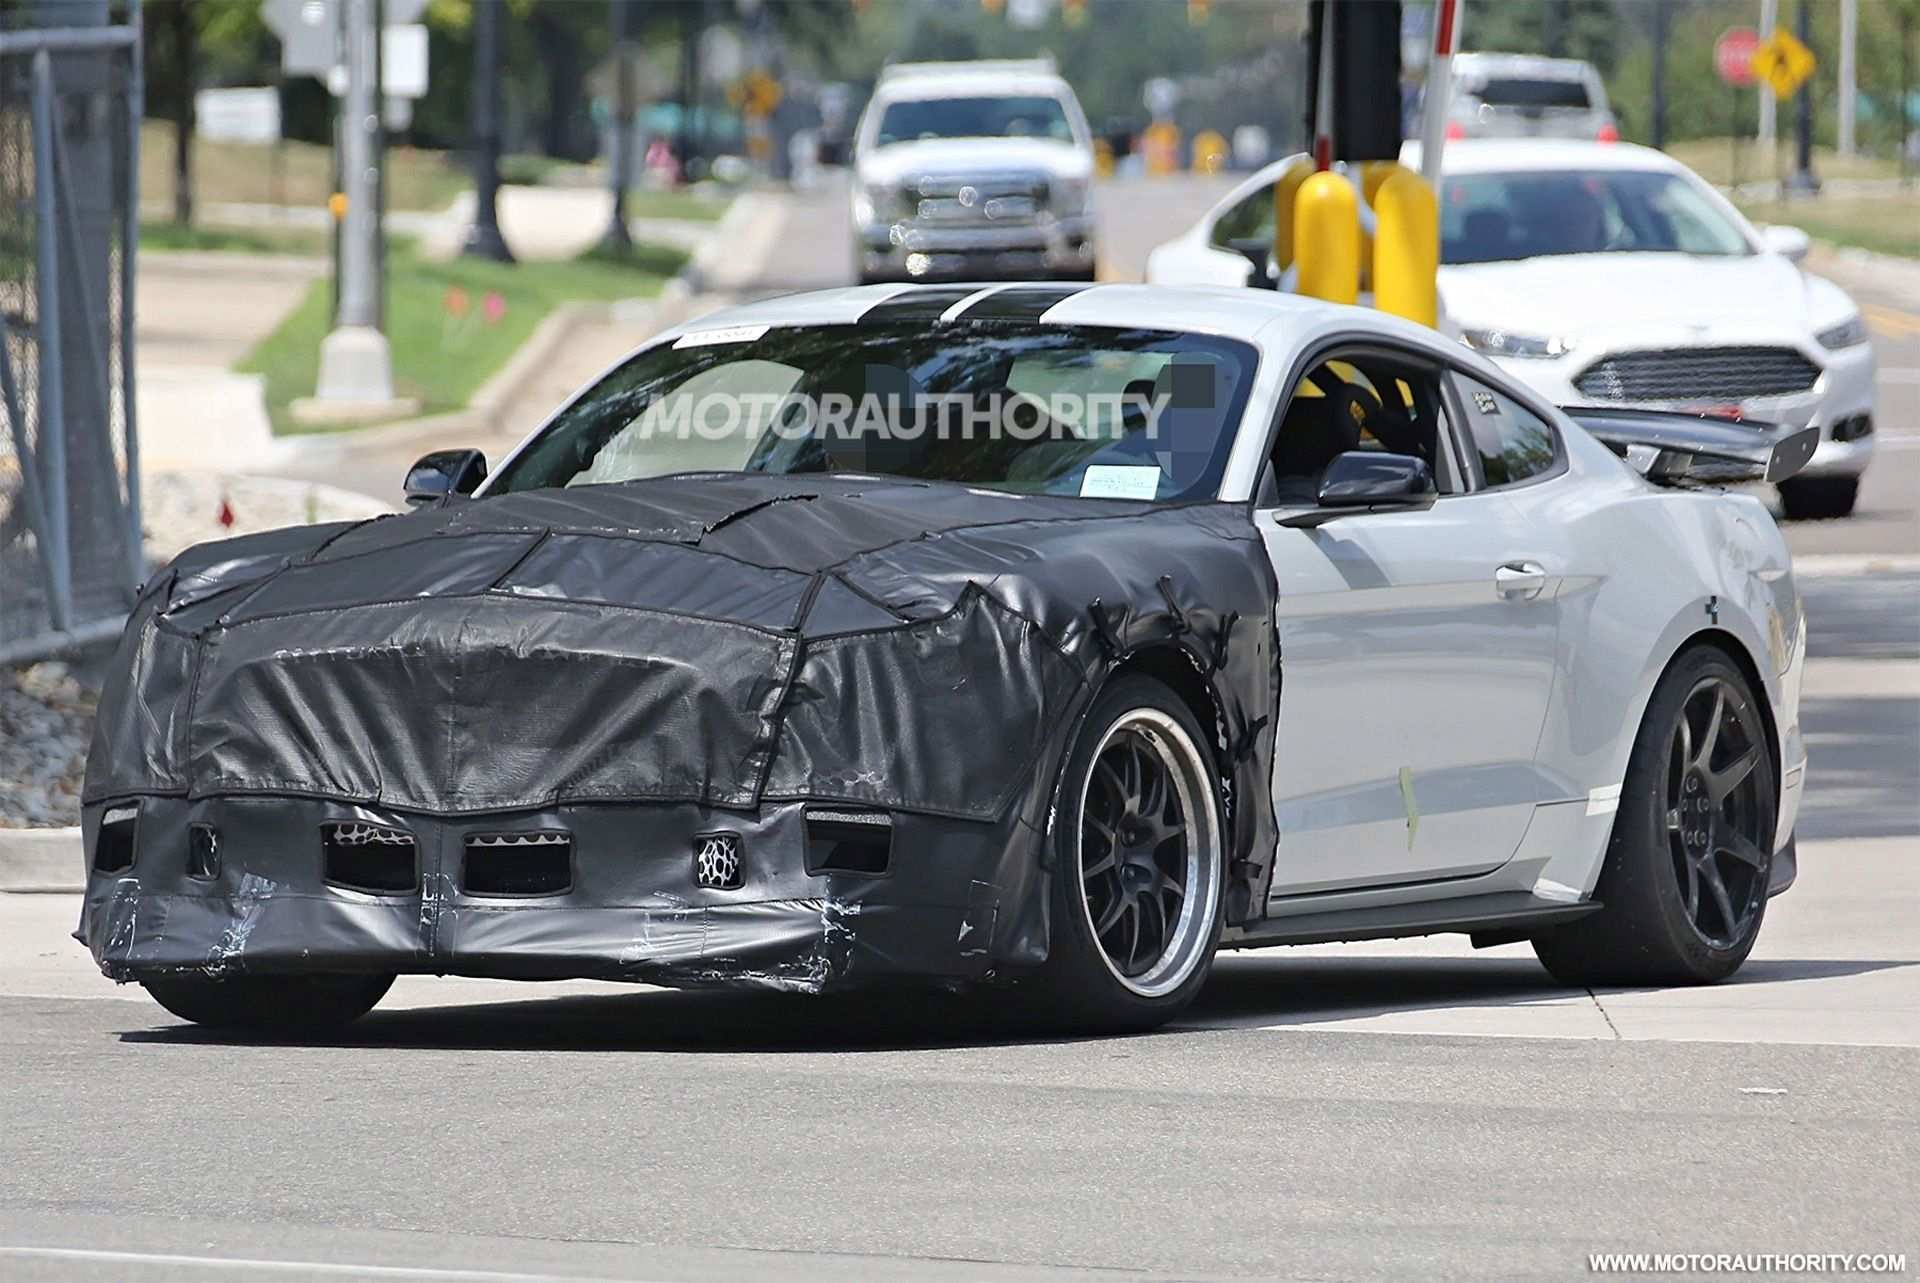 47 A 2019 The Spy Shots Ford Mustang Svt Gt 500 Price And Review